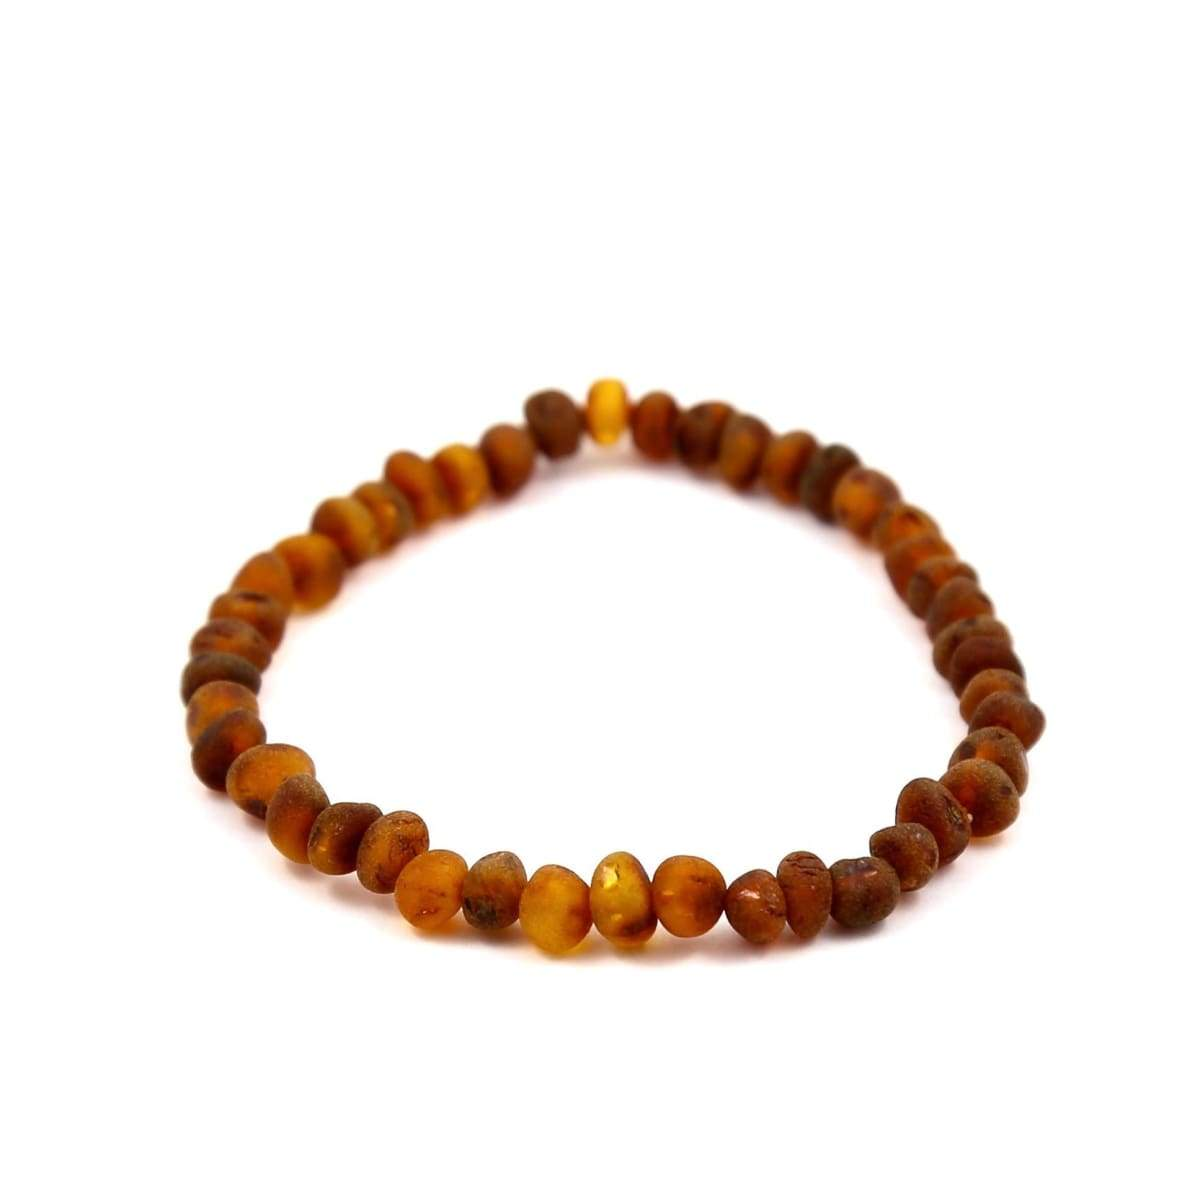 Baltic Amber Bracelet Raw Amber Beads Handmade Knotted Amber Clasp String Gift